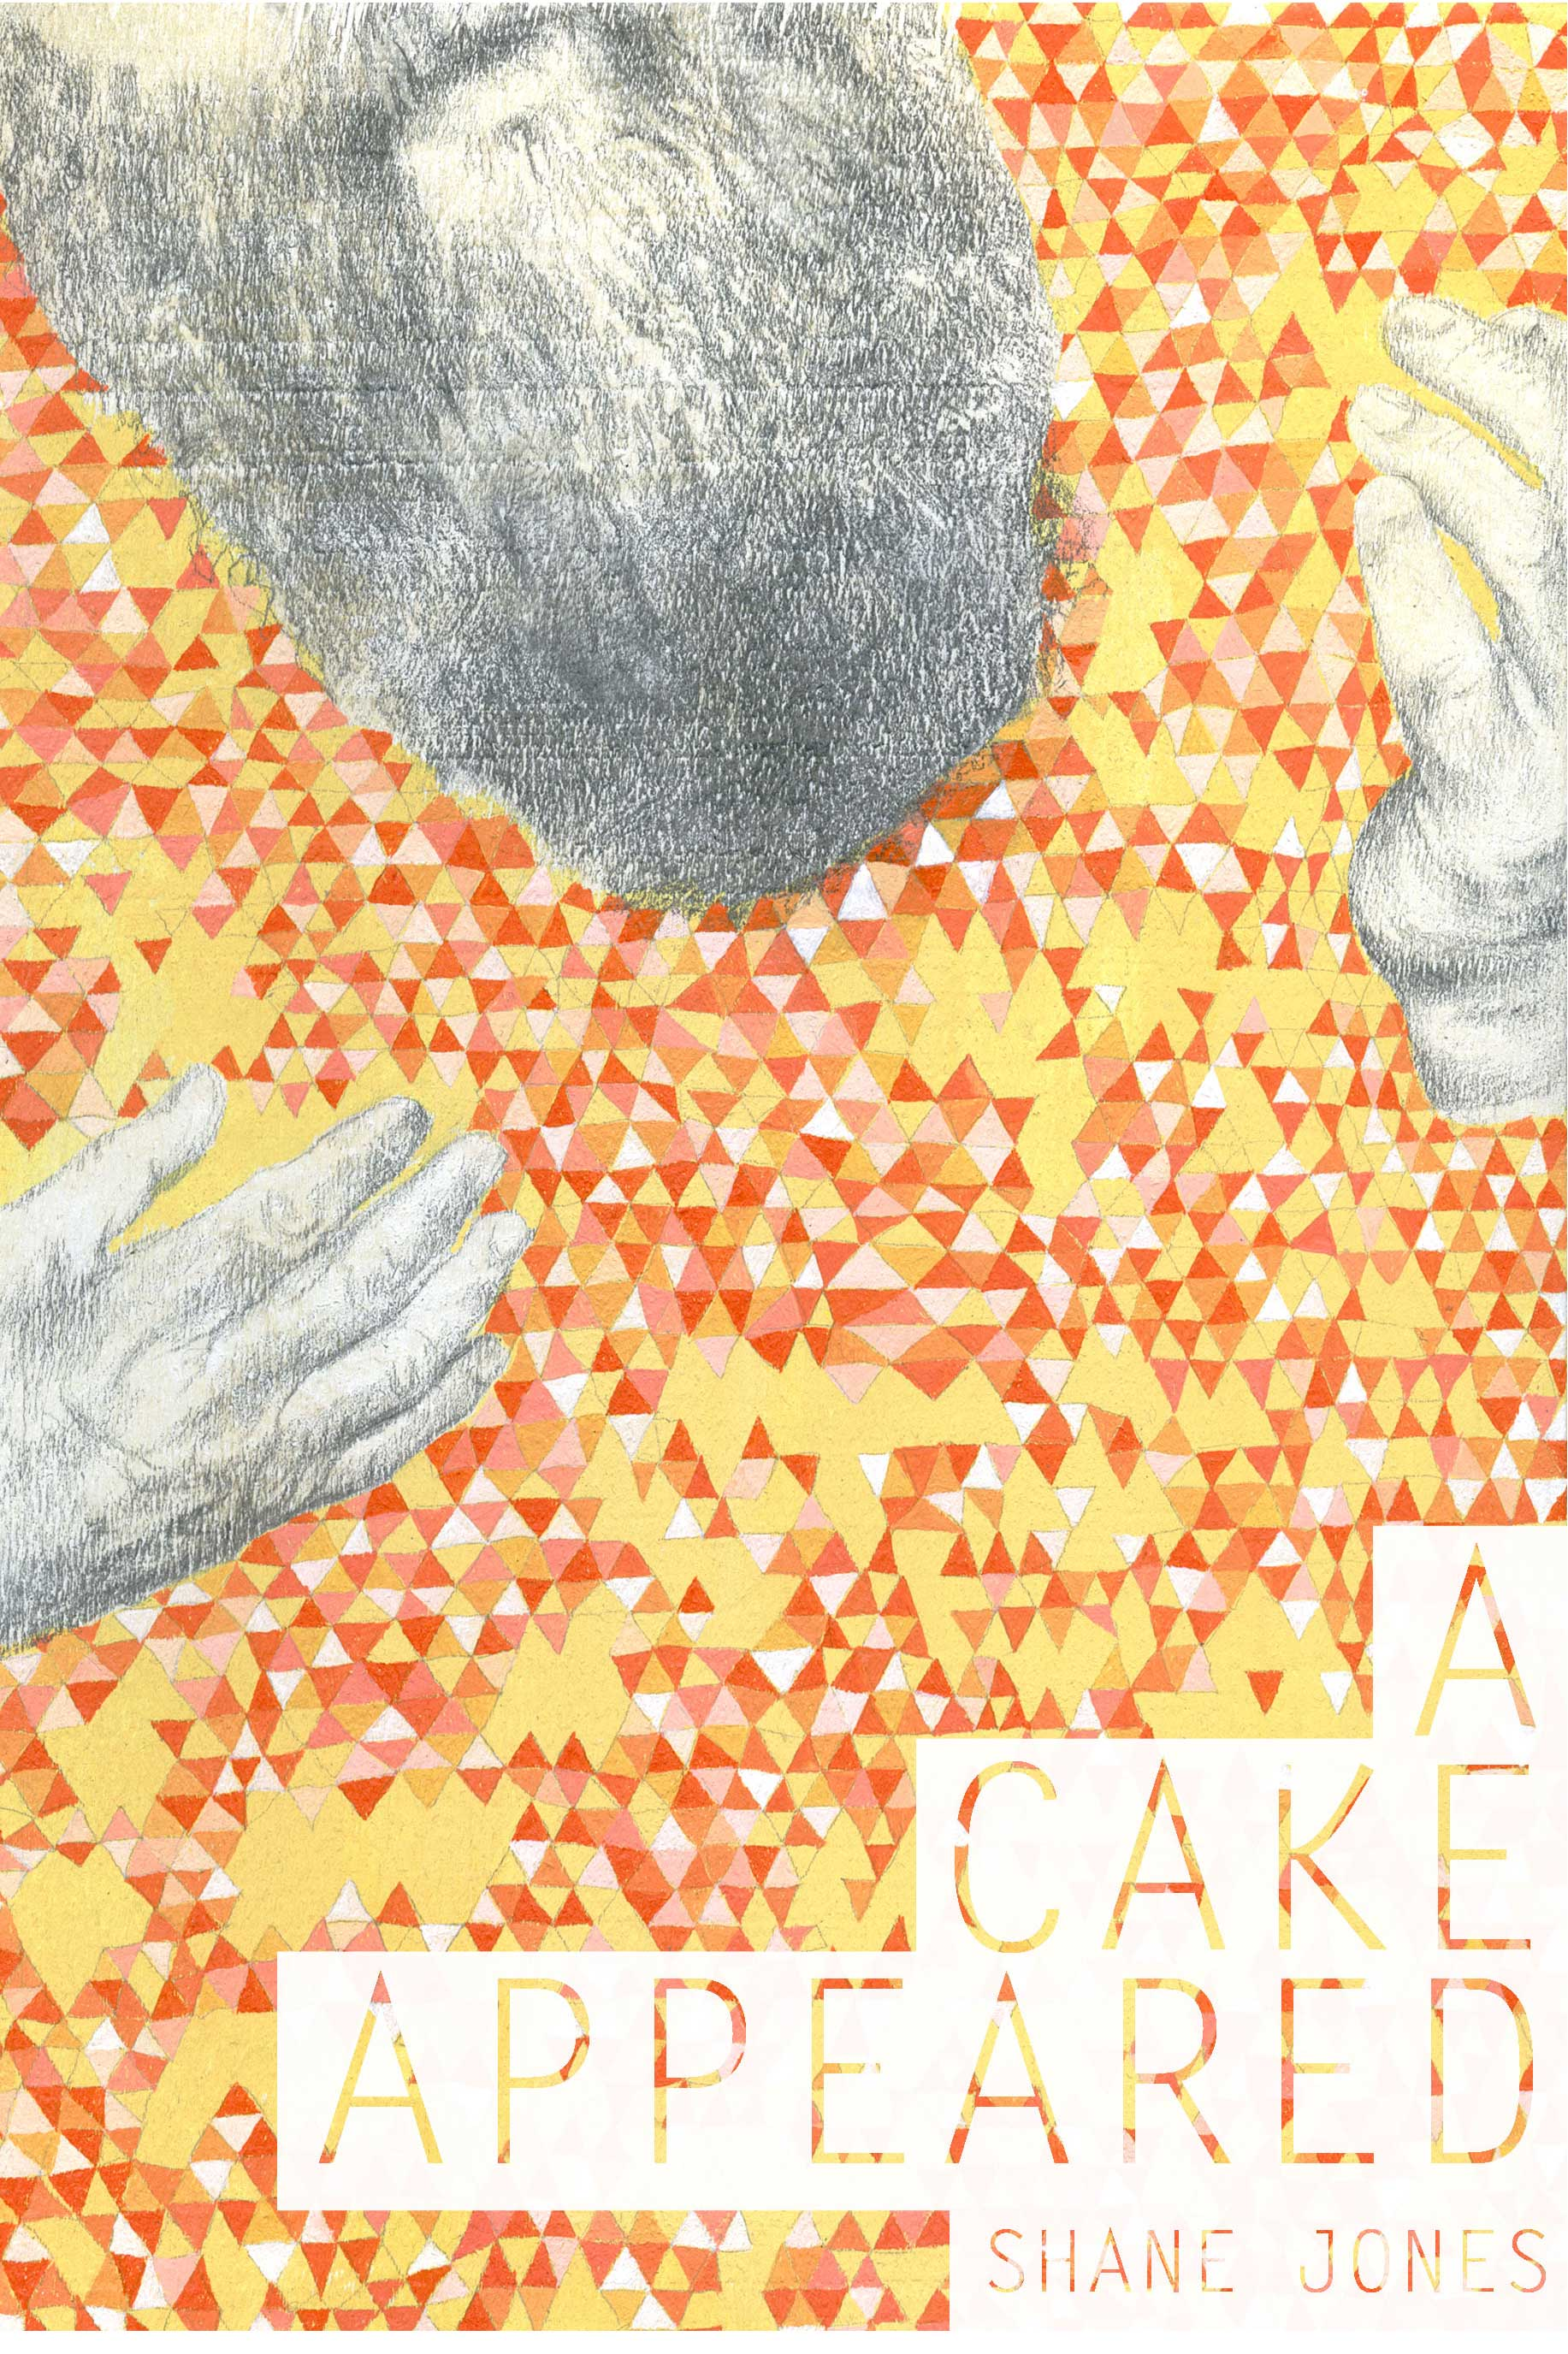 a cake appeared front cover